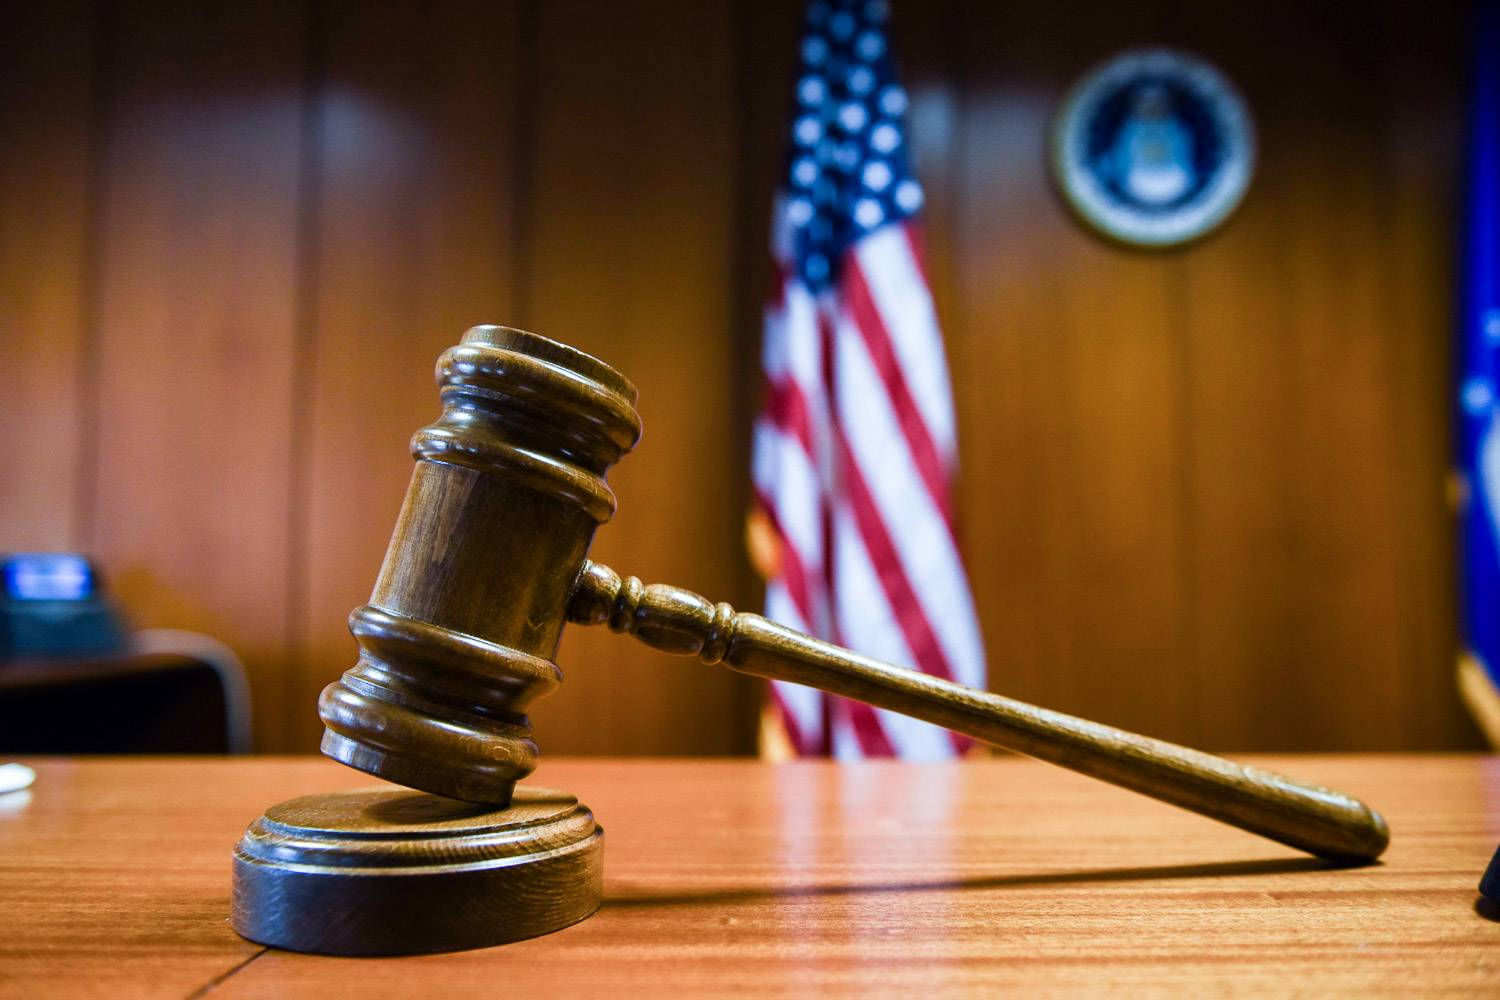 Image fo a gavel on a court bench with American flag in the background